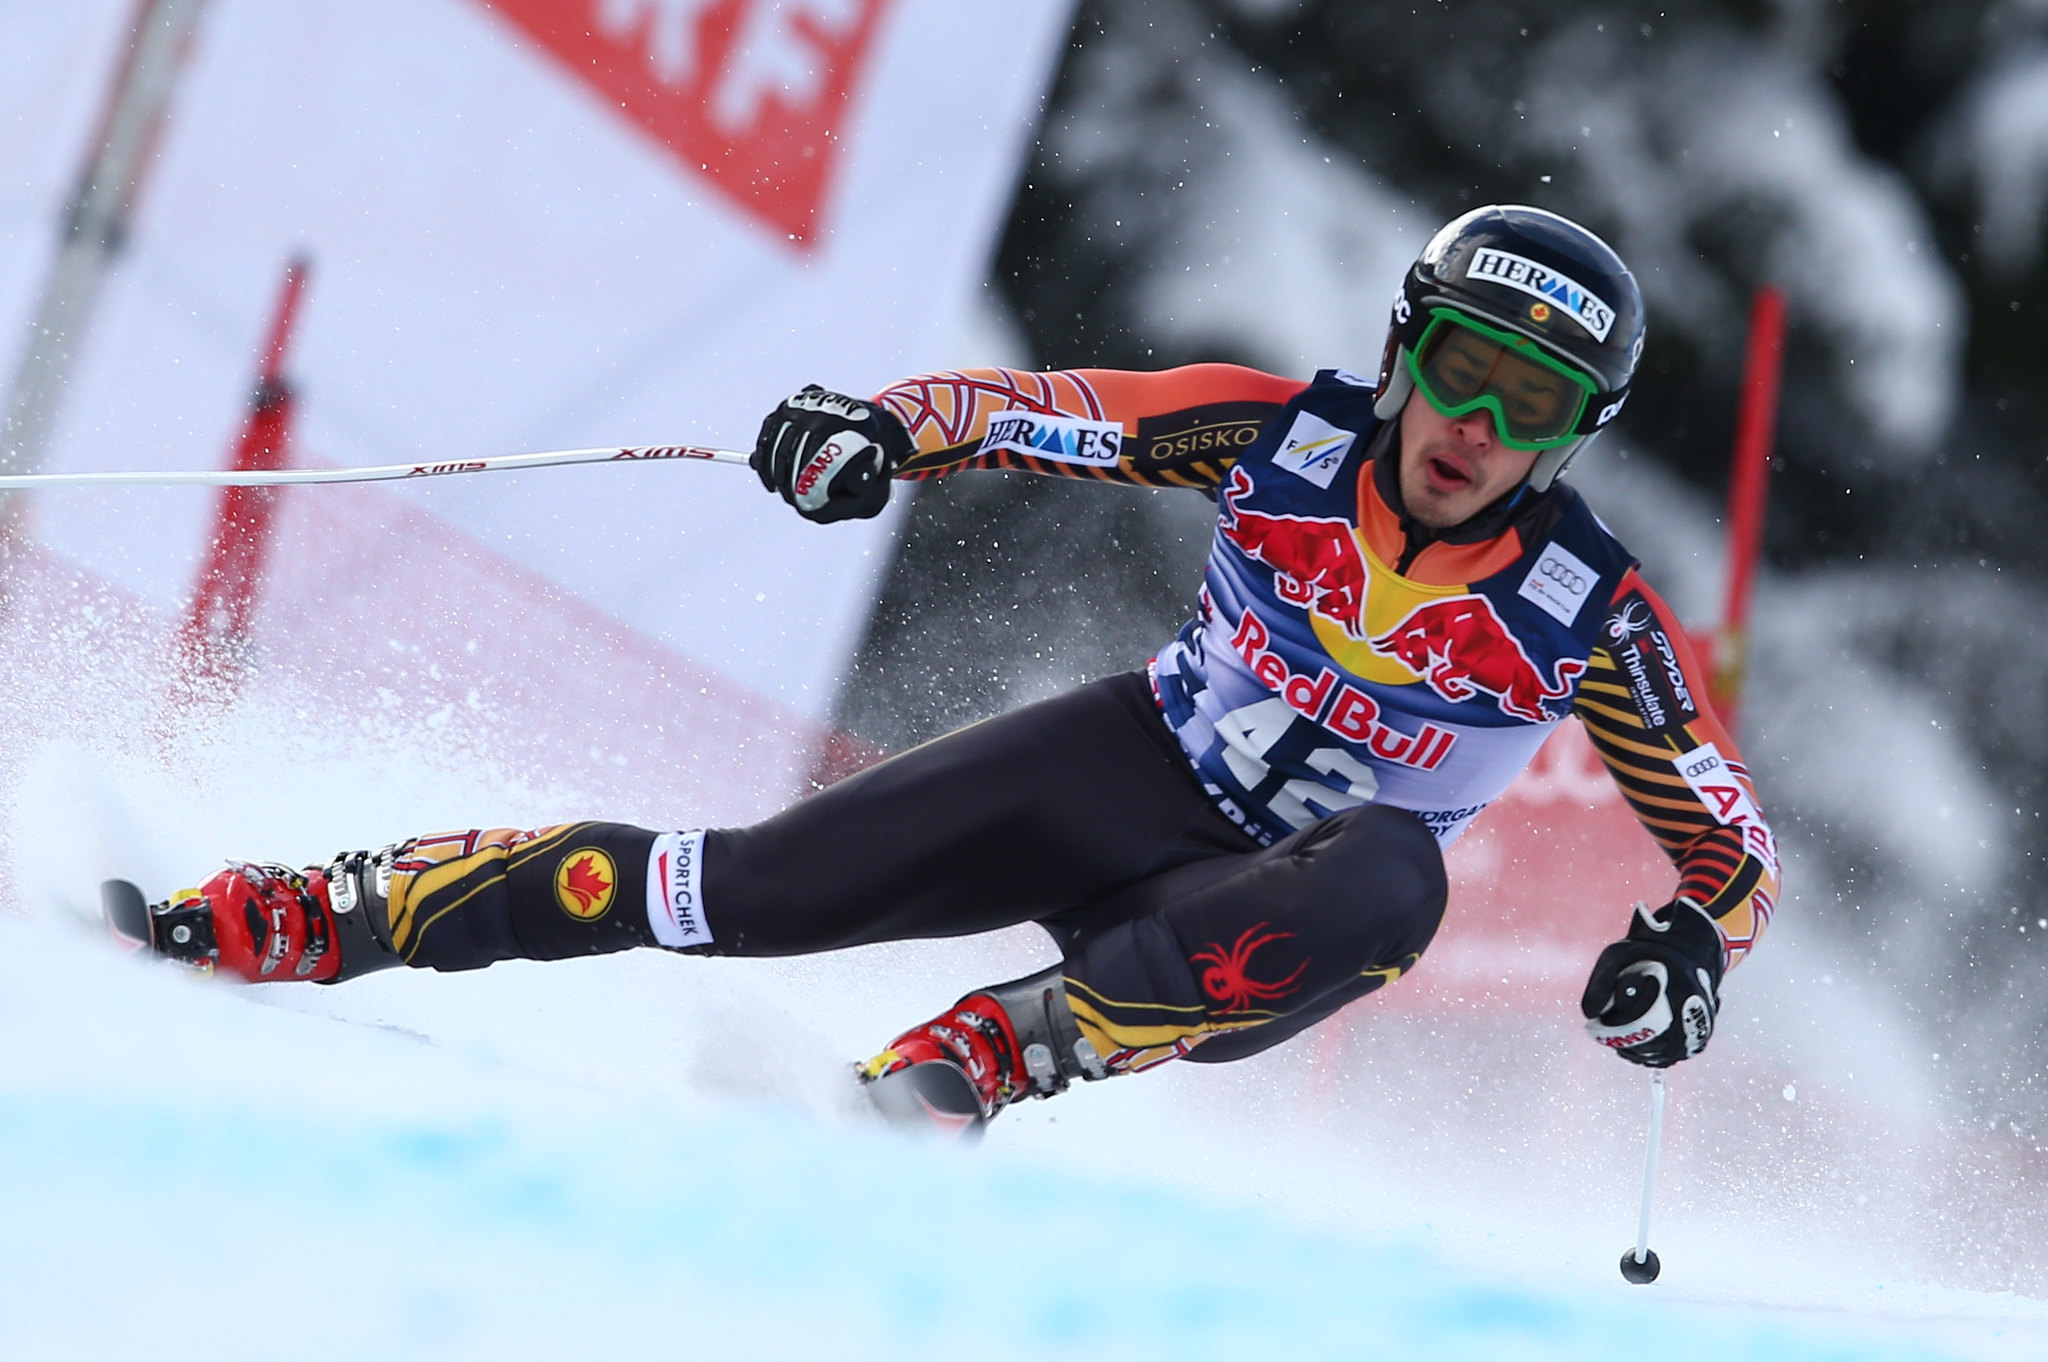 Morgan Pridy in action during the downhill in Kitzbuehel, AUT